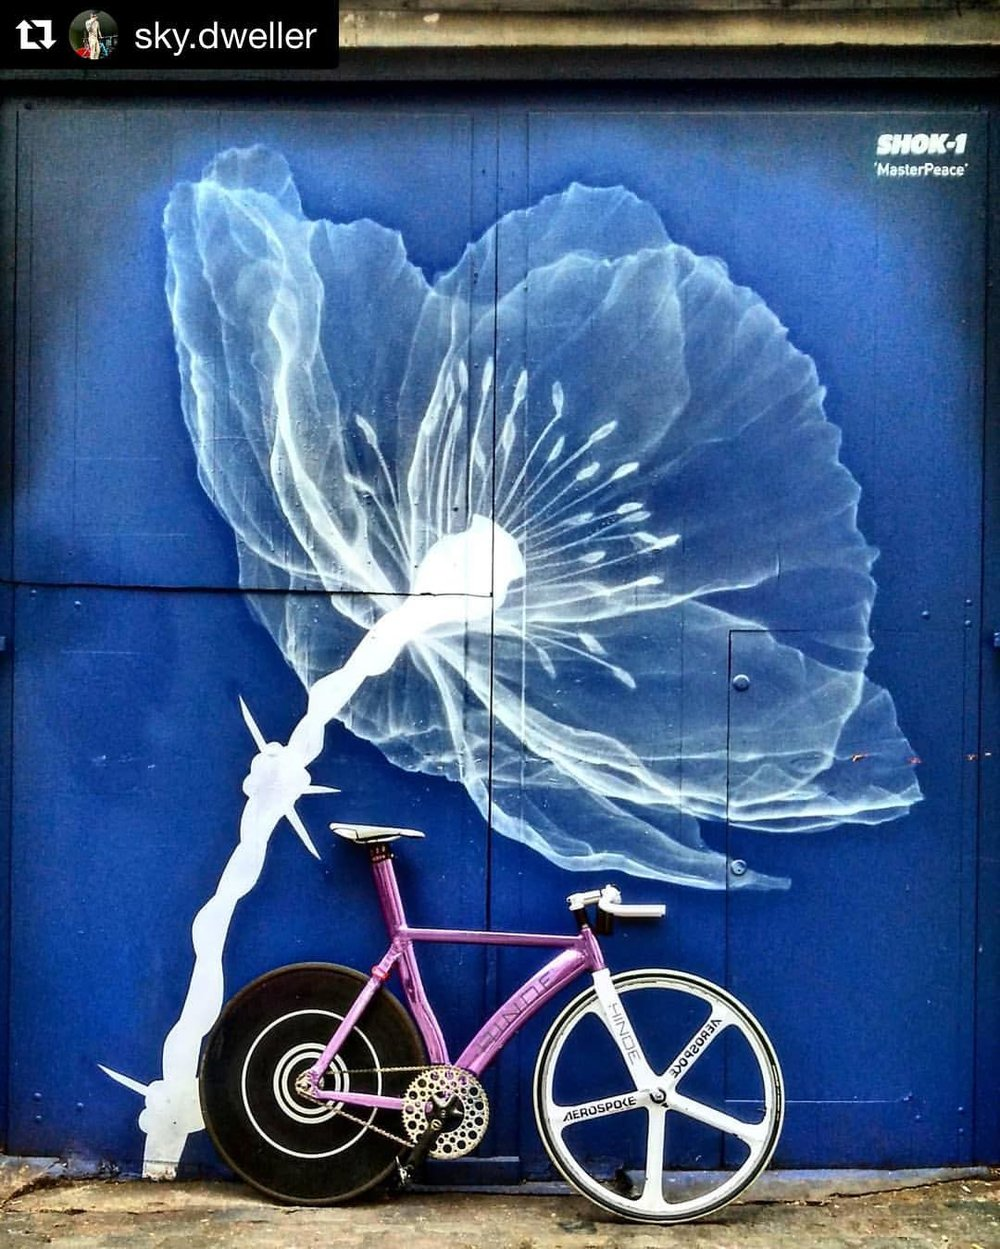 #Repost @sky.dweller 👊😎 ・・・ Be A Flower Not A Weed - Aaron Neville 🌷 - Art By @shok_1 ️ Chainring by @bespokechainrings ⚙#bespokechainrings #deluna #track #chainring #60t #bikeporn #bike #mural #london #fixedgear #trackbike